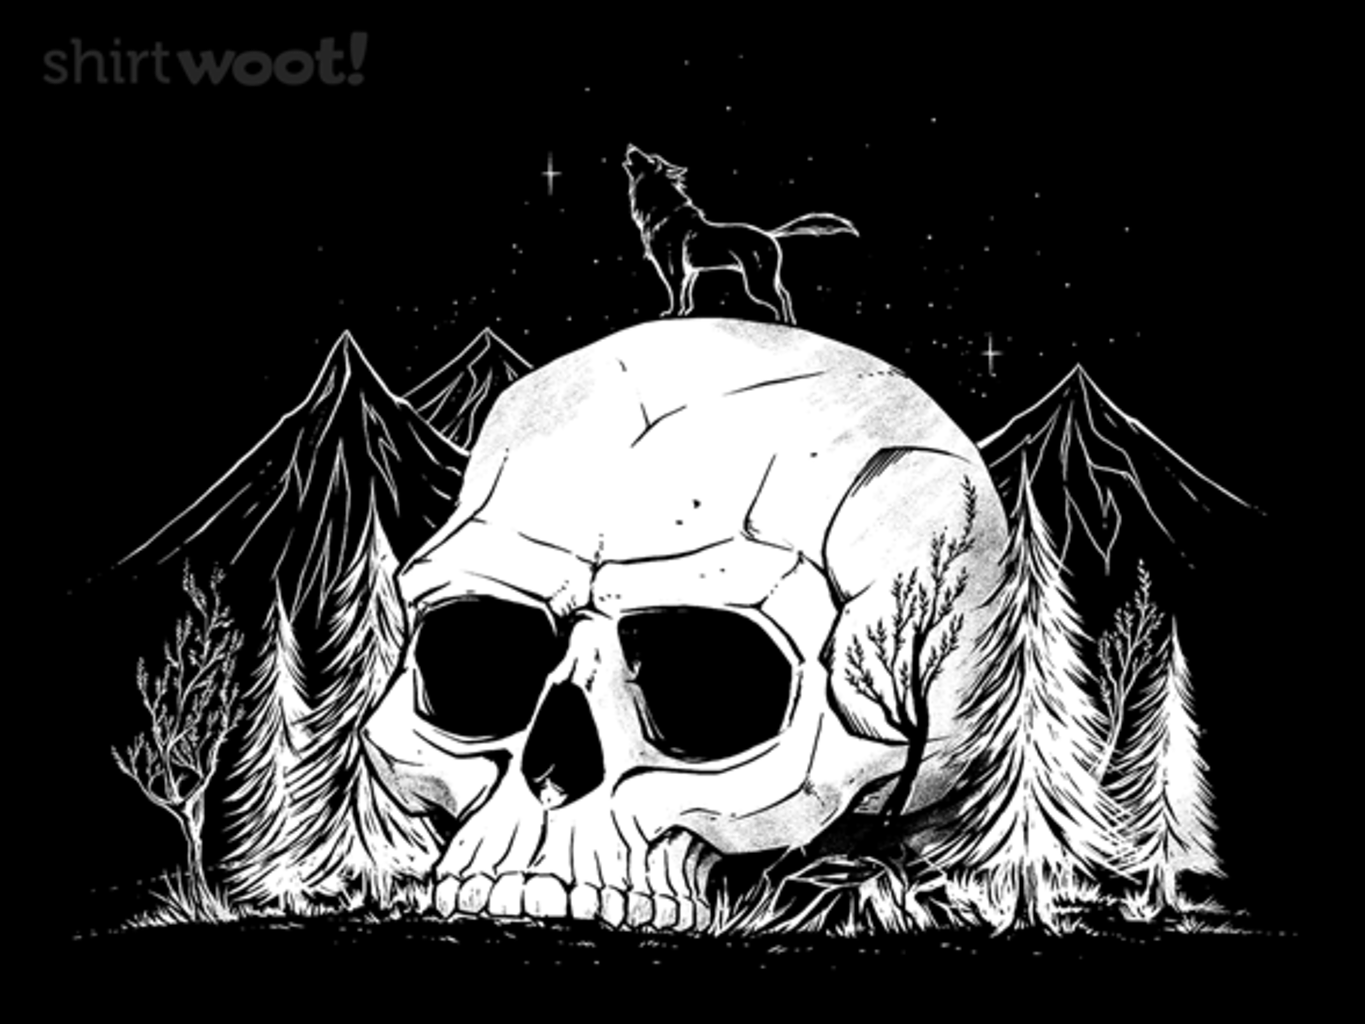 Woot!: Skull Forest